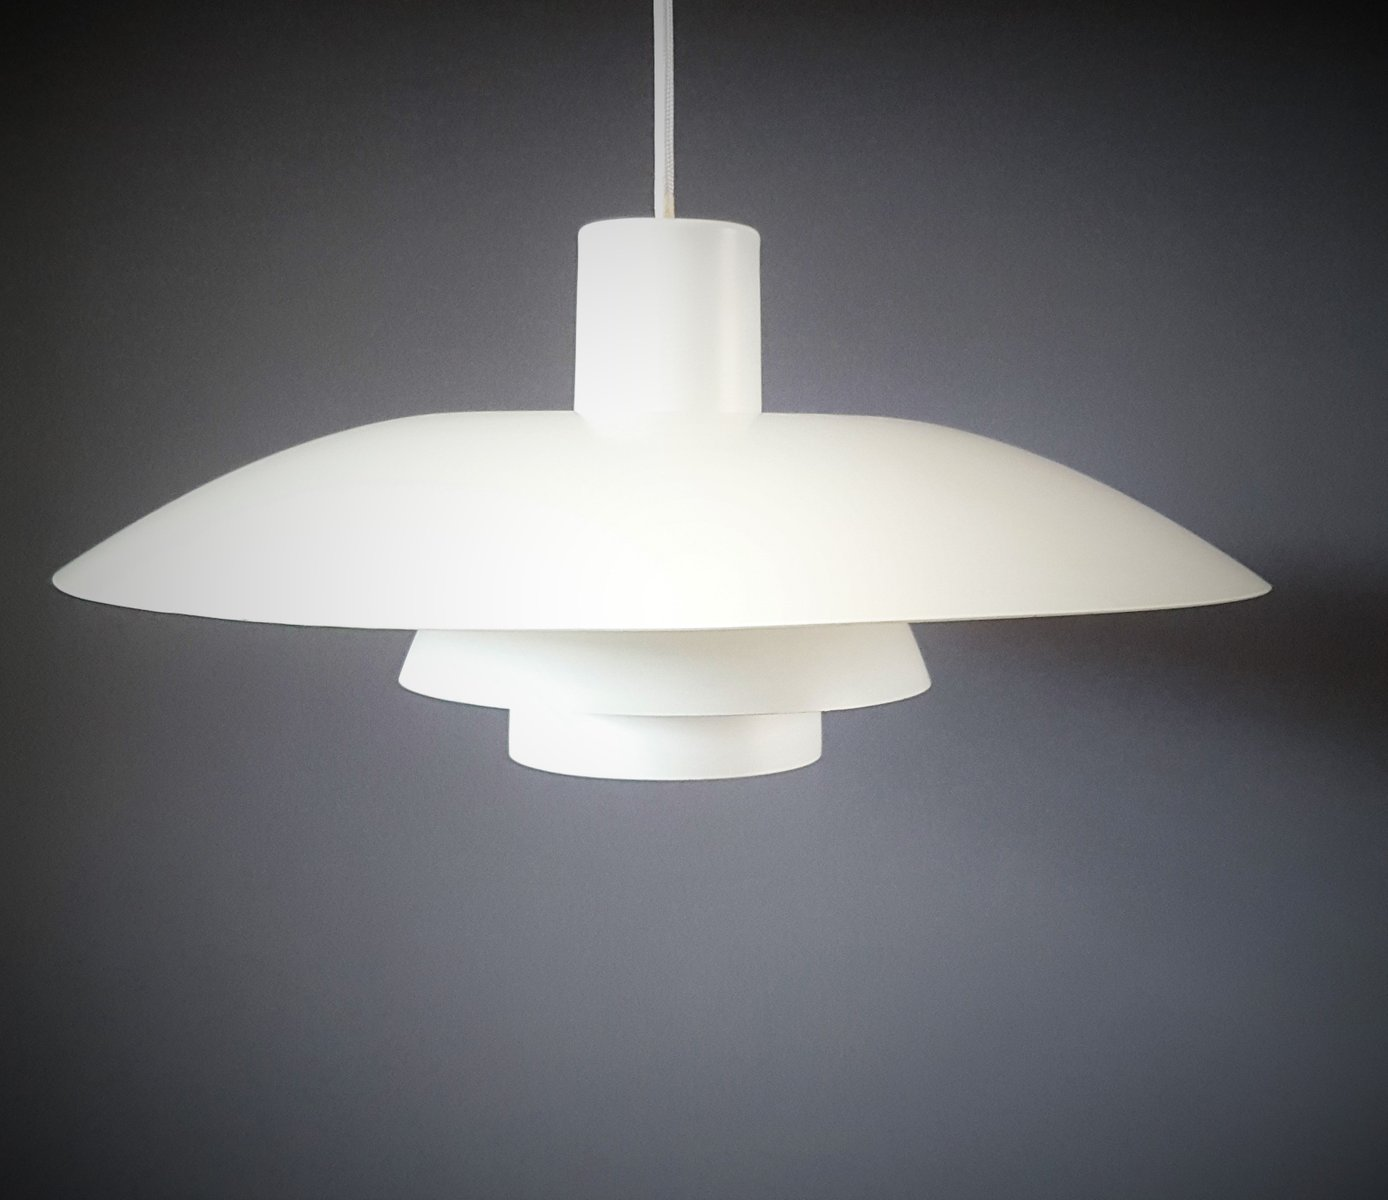 vintage white ph 4 3 pendant lamp by poul henningsen for louis poulsen for sale at pamono. Black Bedroom Furniture Sets. Home Design Ideas